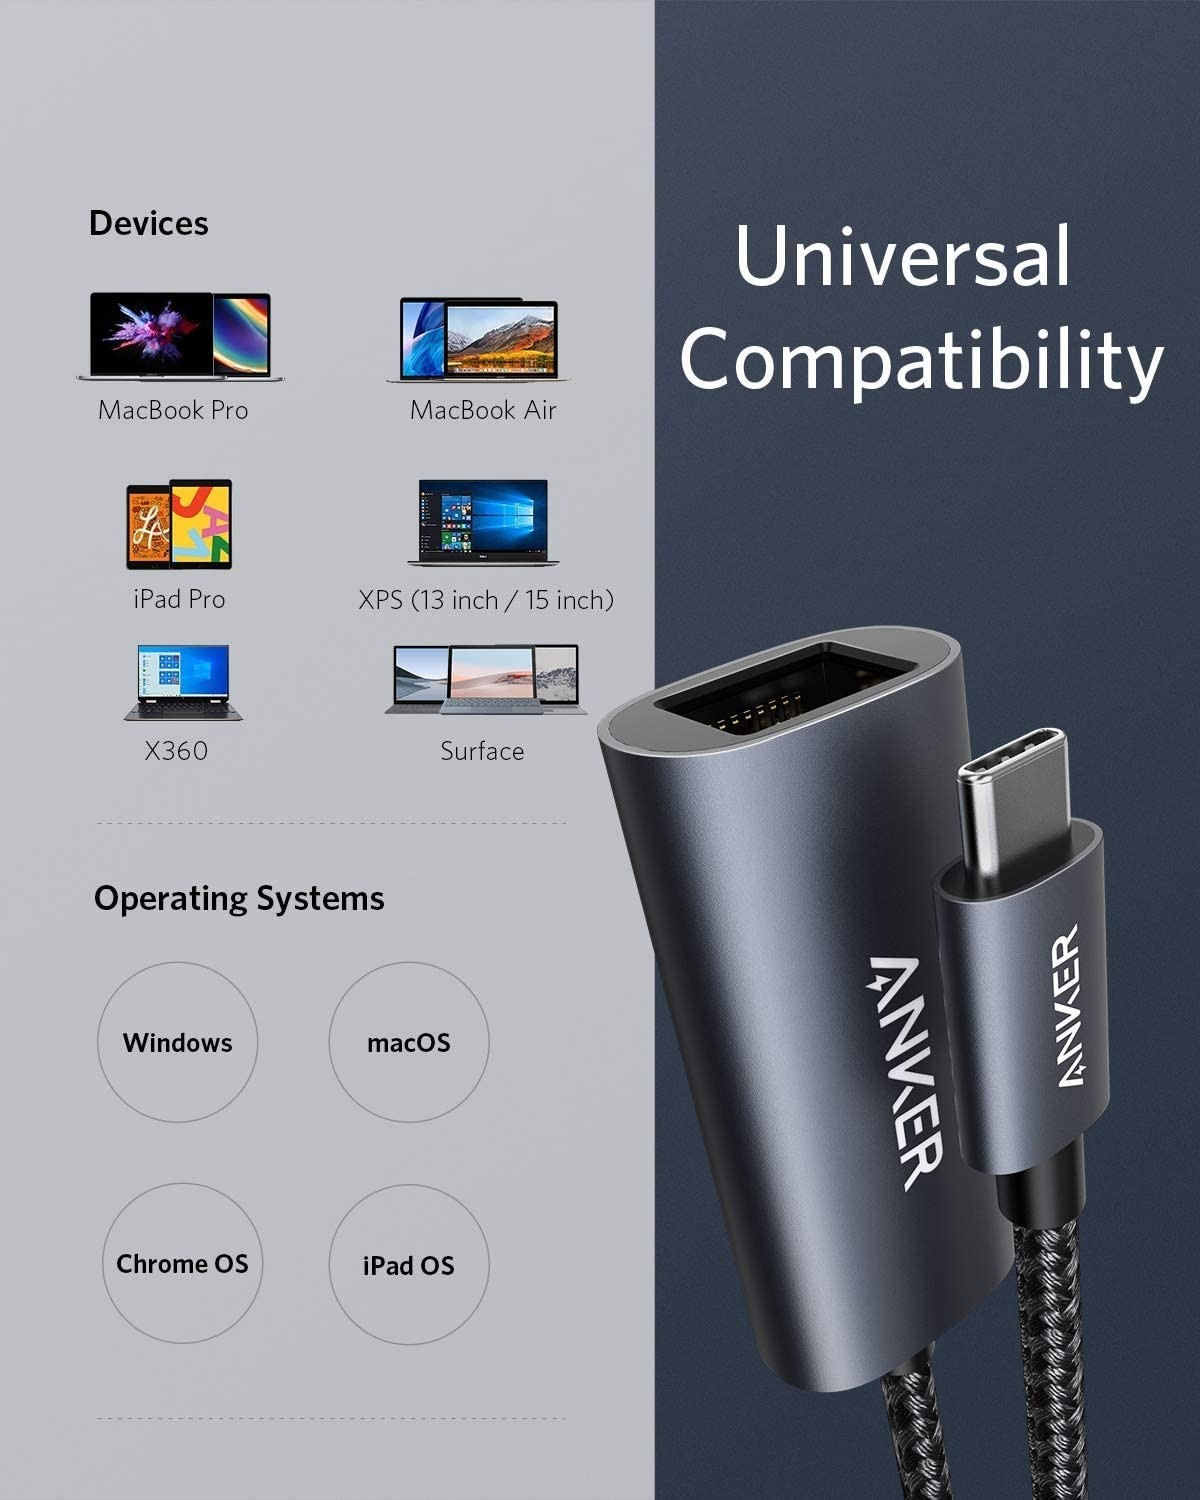 Anker USB C to Ethernet, Aluminum Portable Adapter, AK-A83130A1